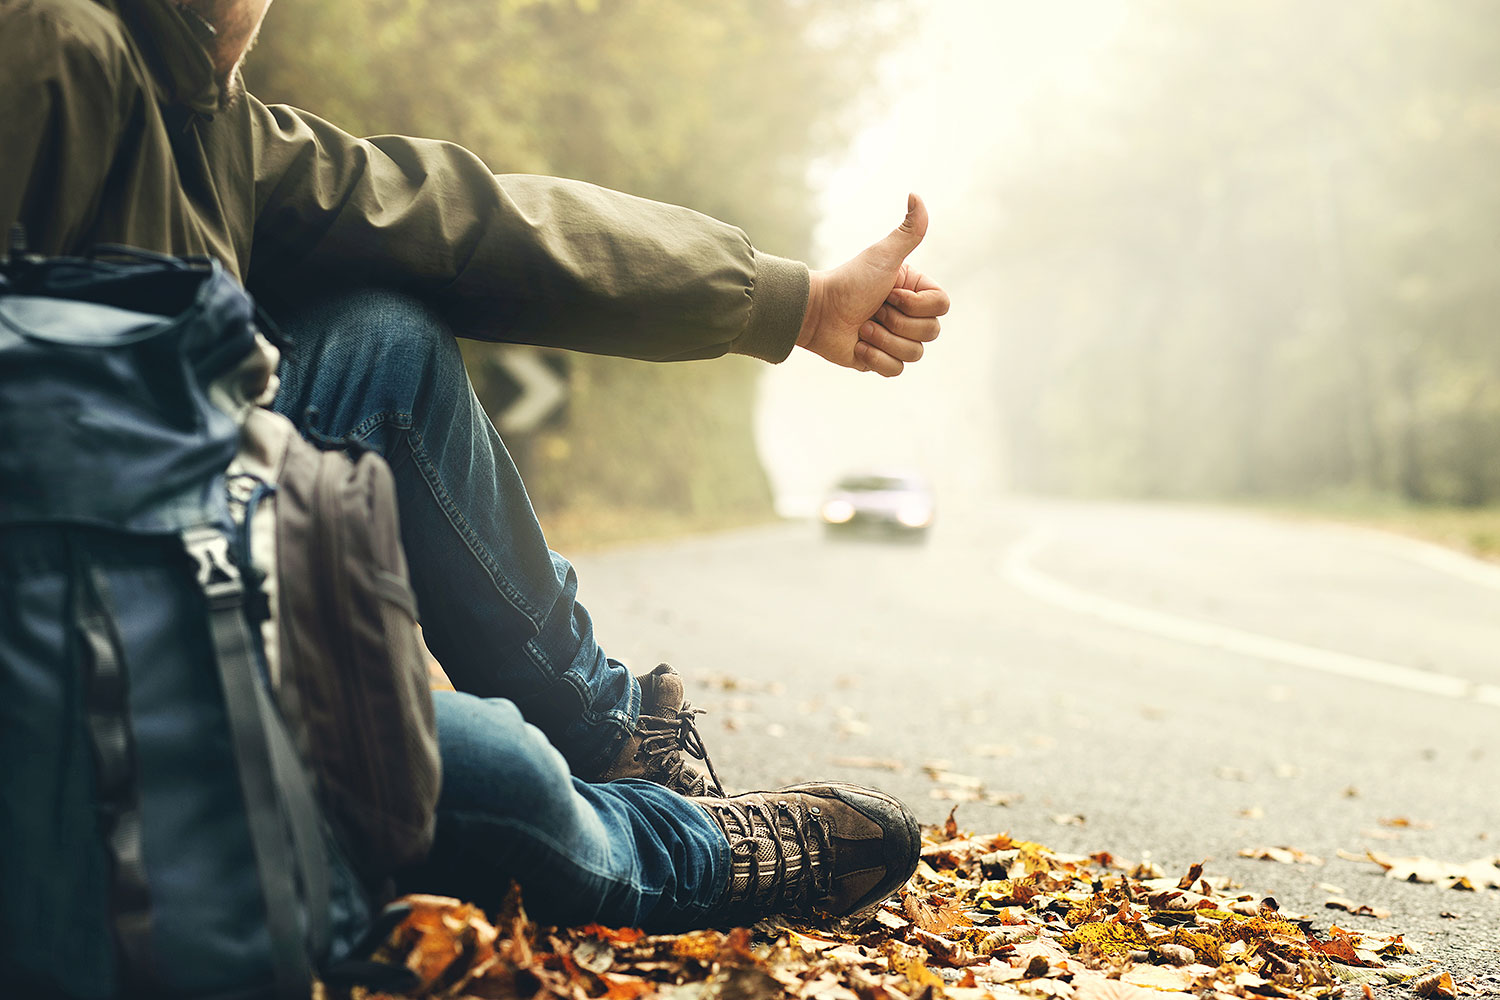 Man sitting on the road with backpack hitchhiking